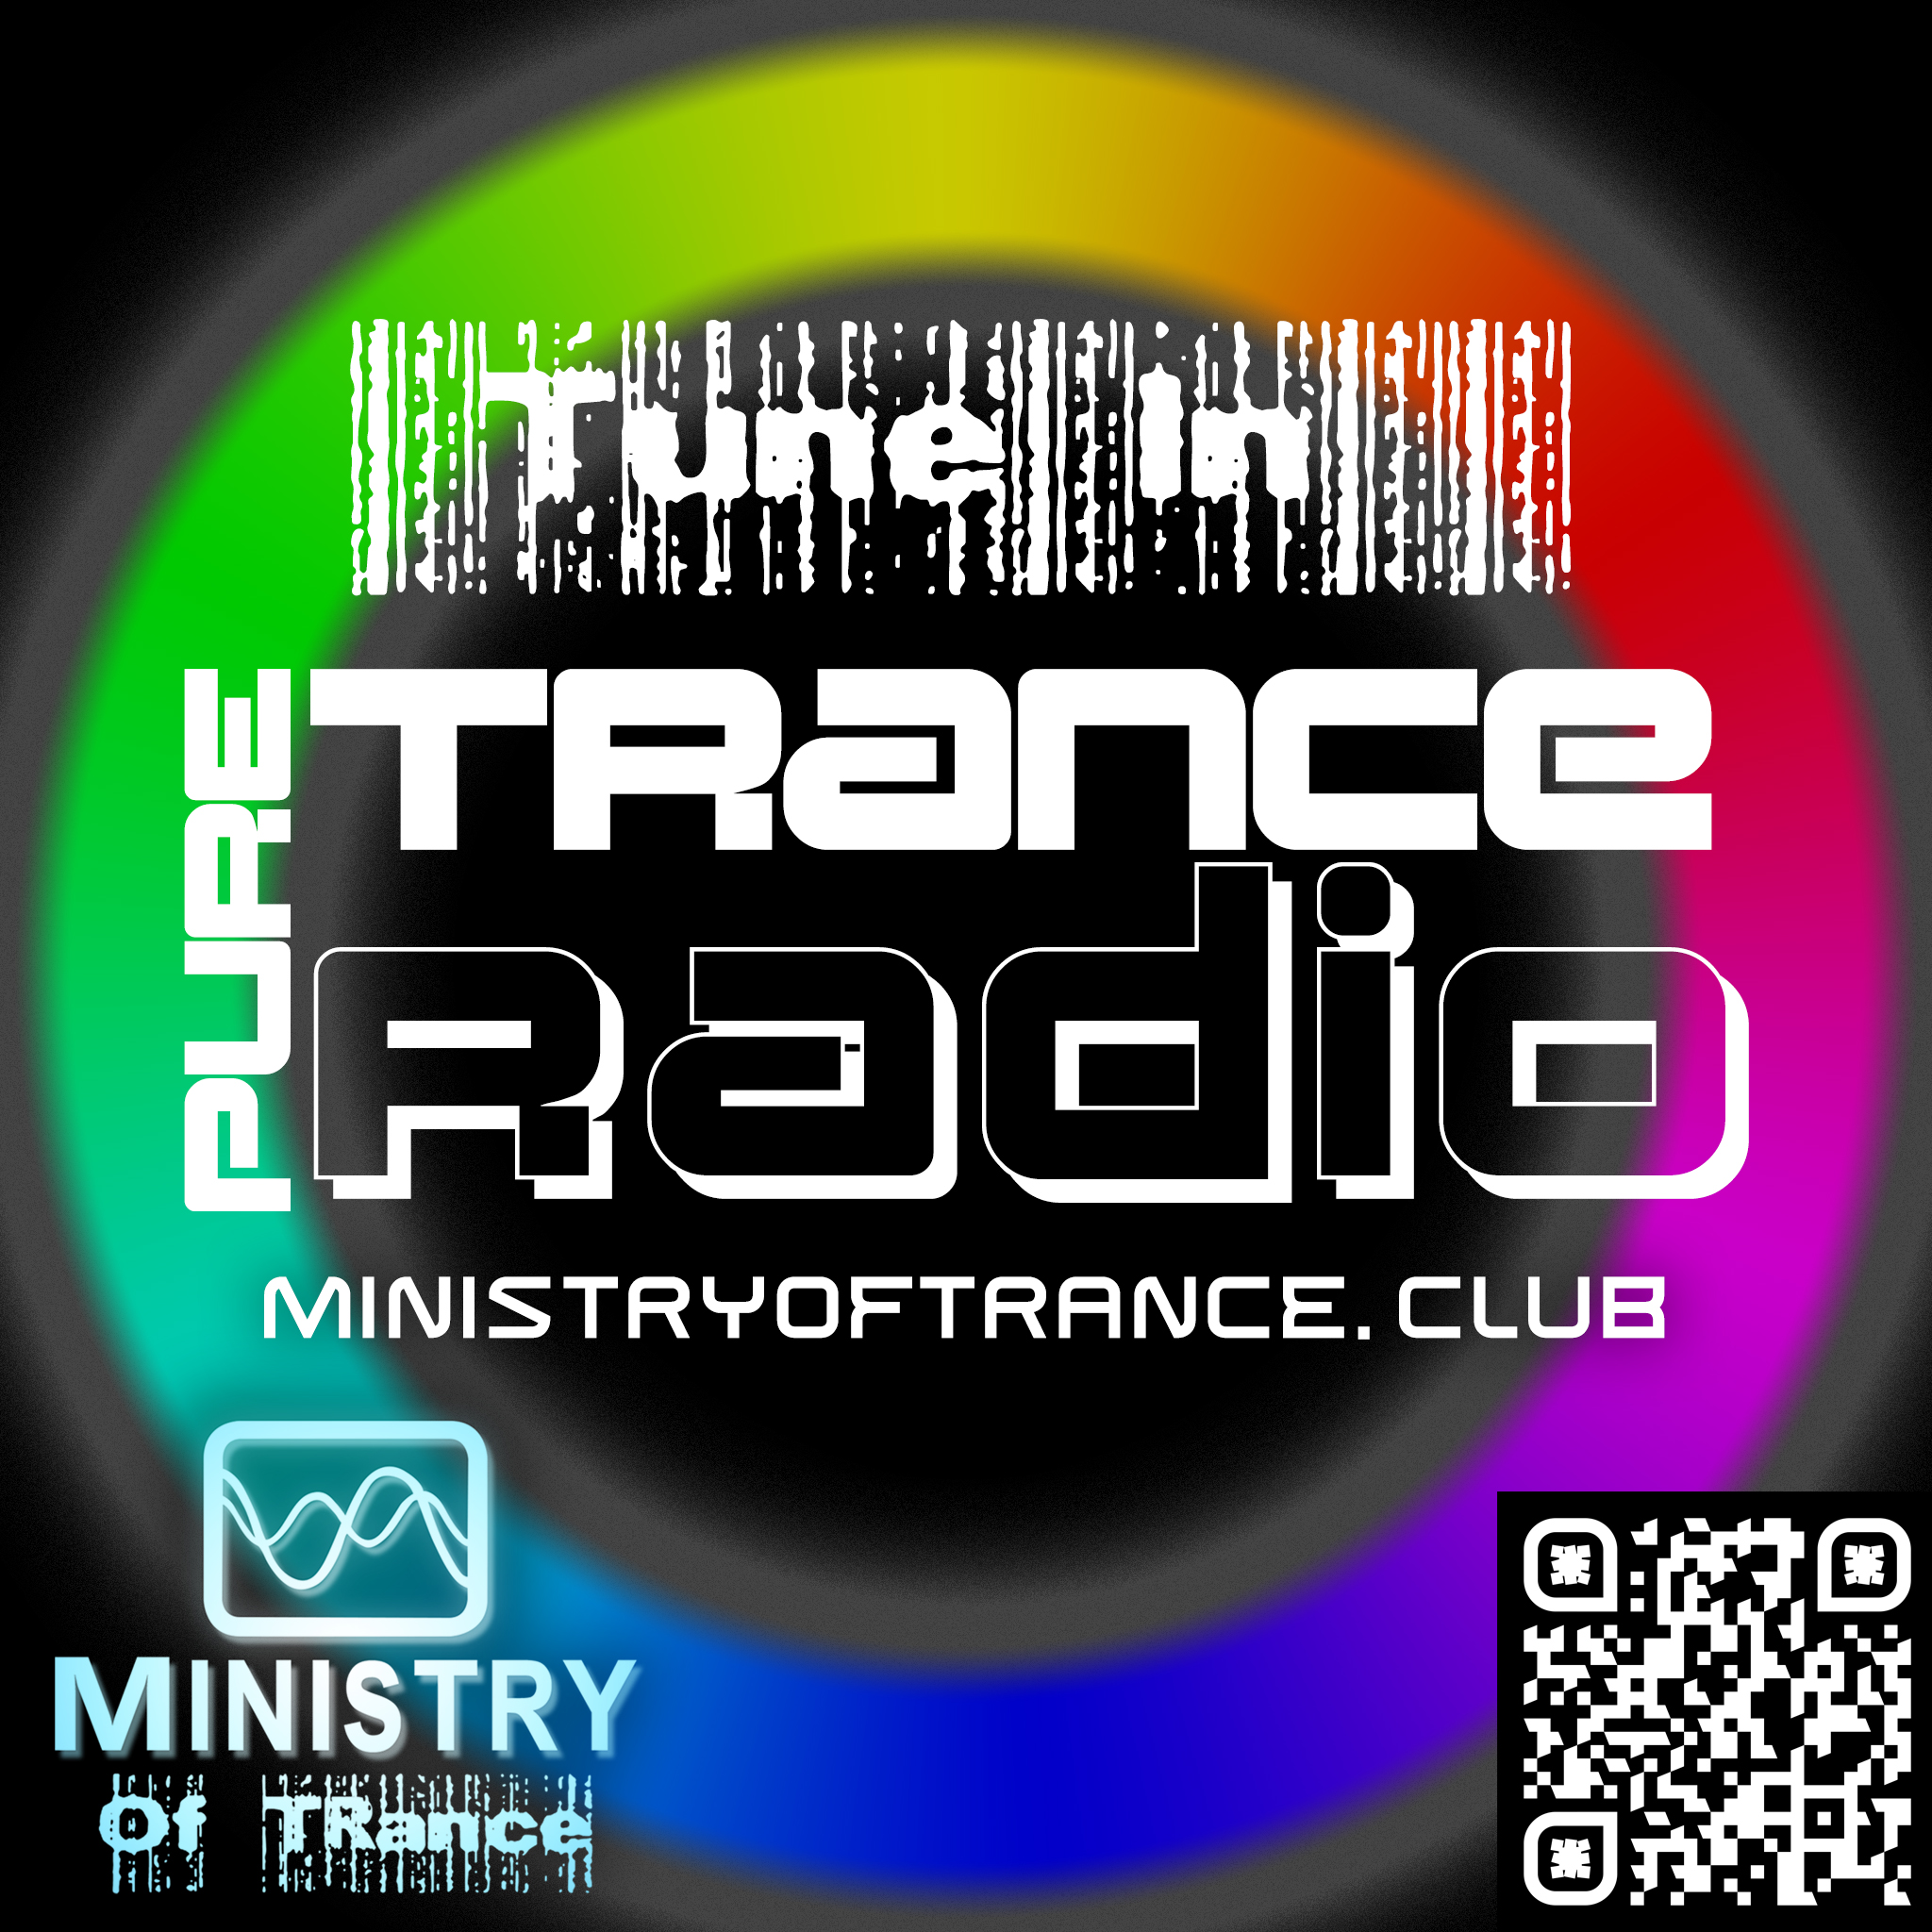 MINISTRY Of TRance - Pure Trance Radio